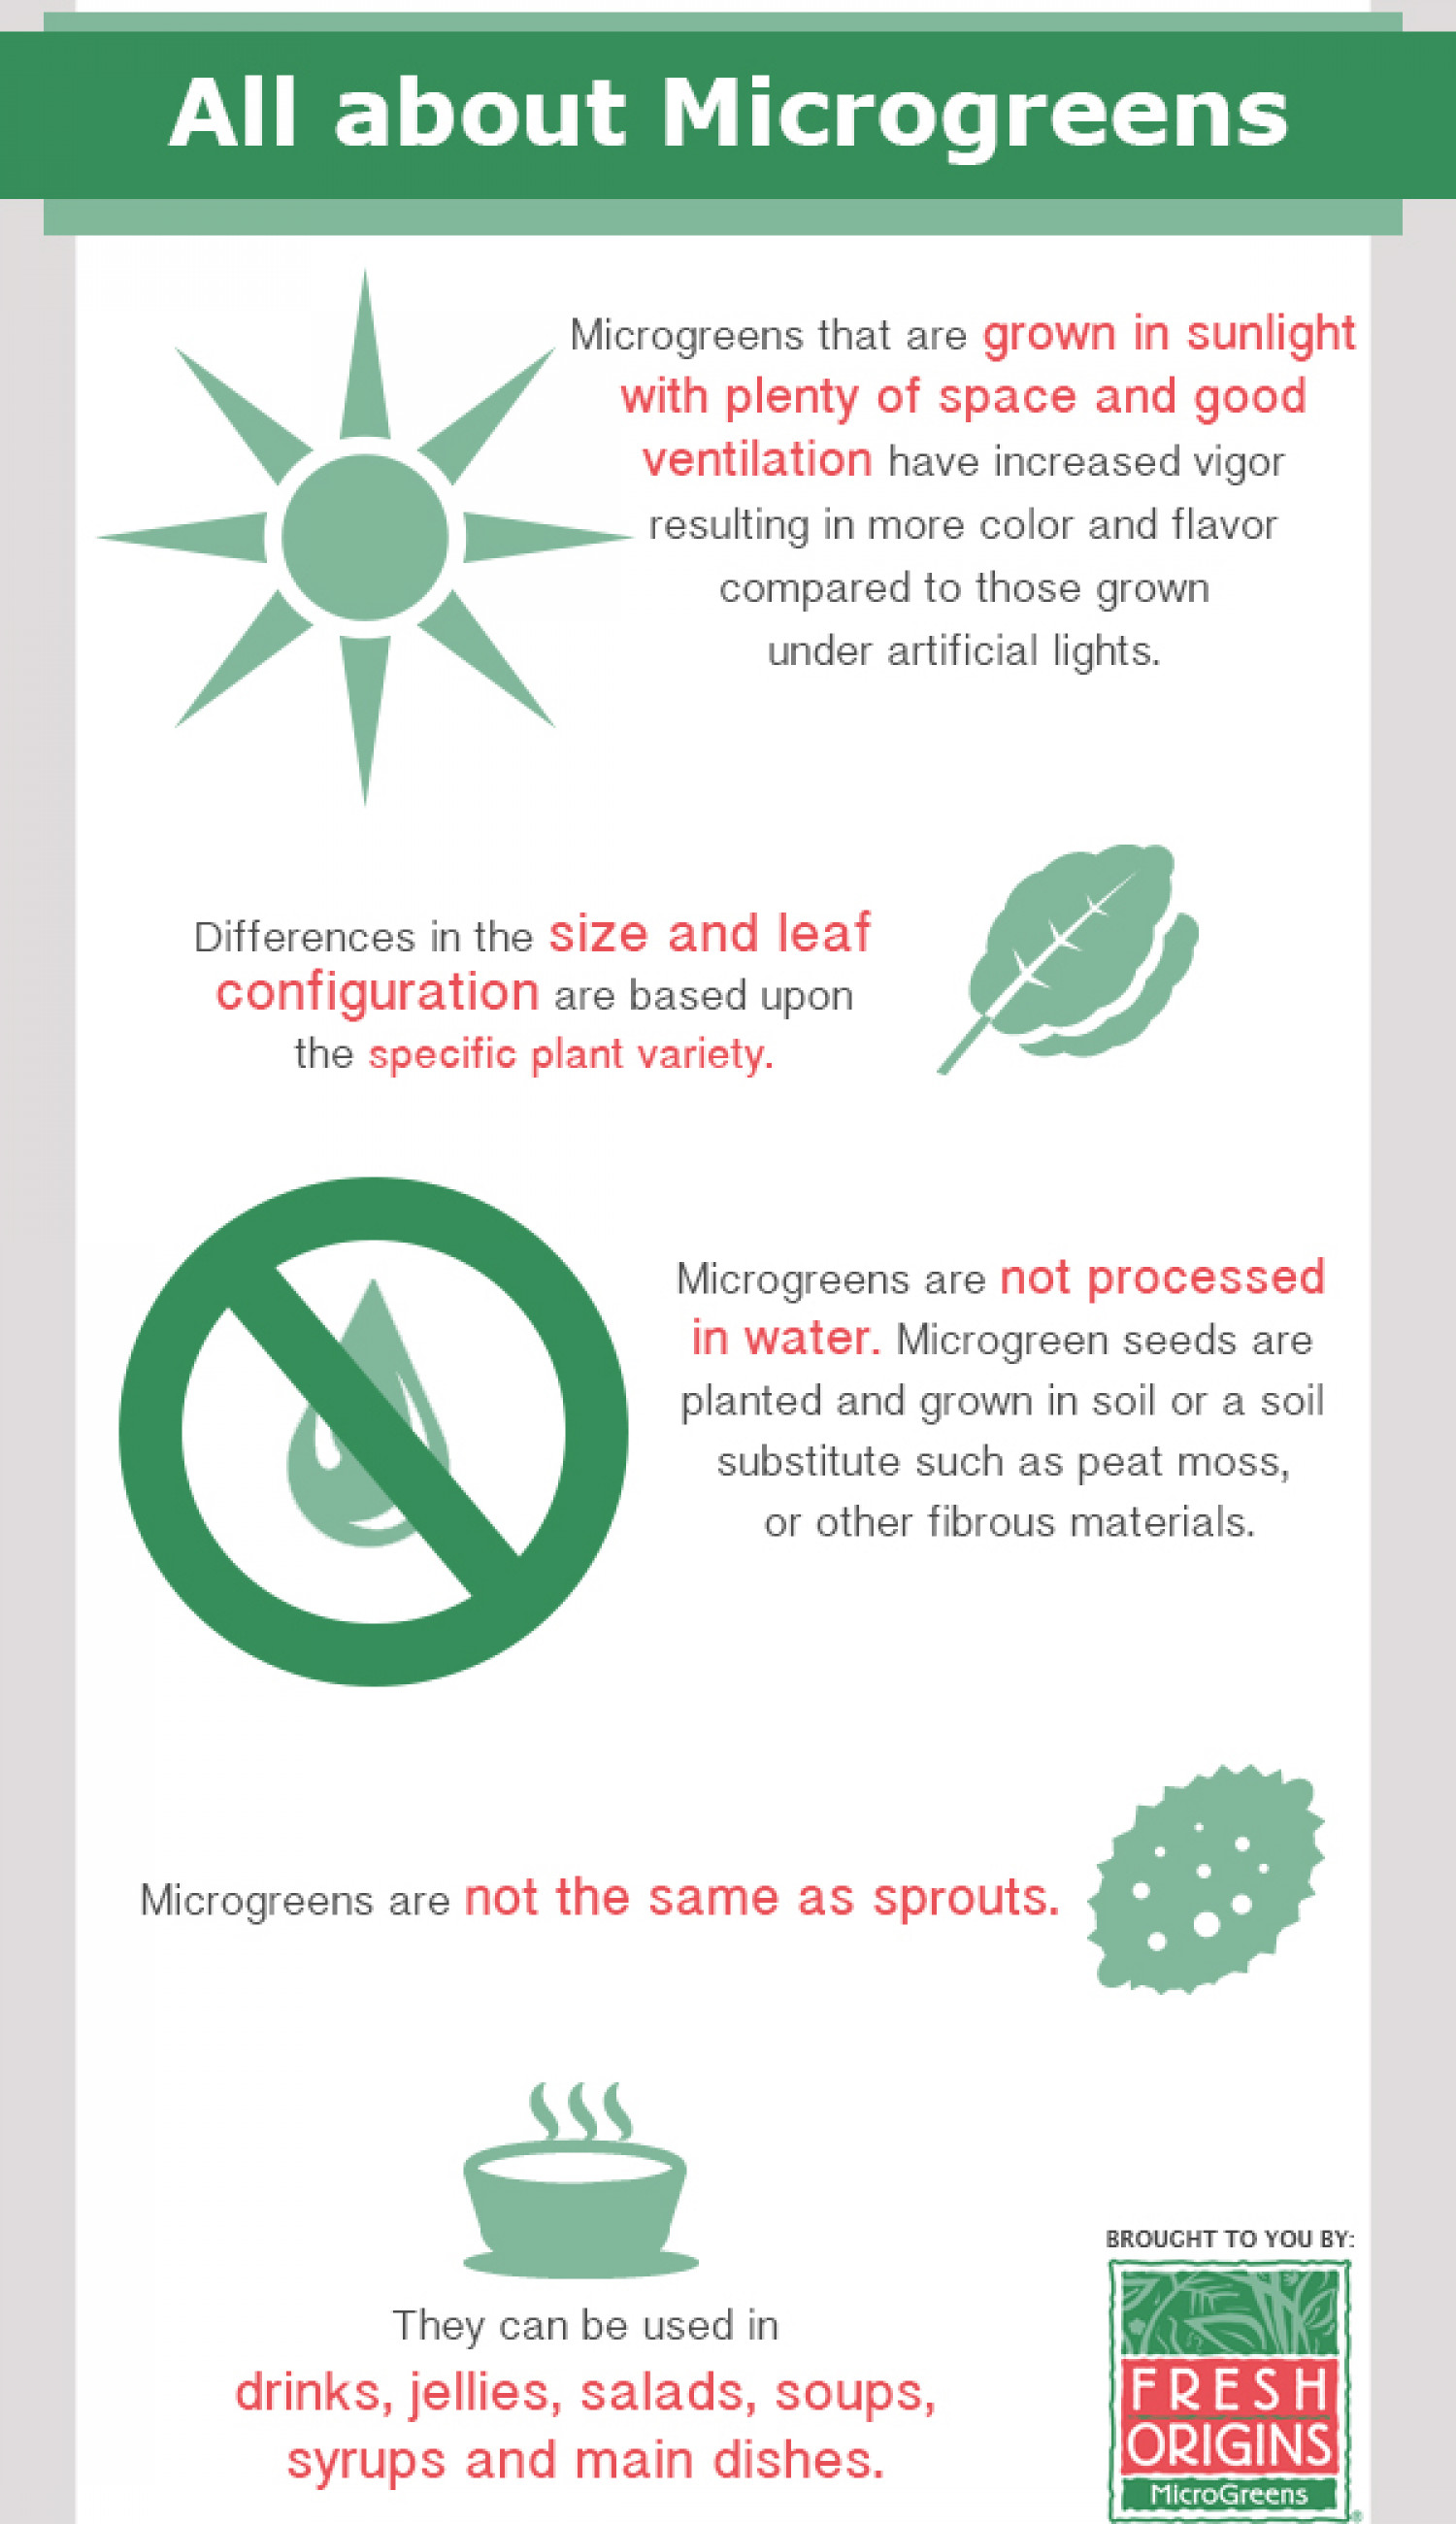 All About Microgreens Infographic